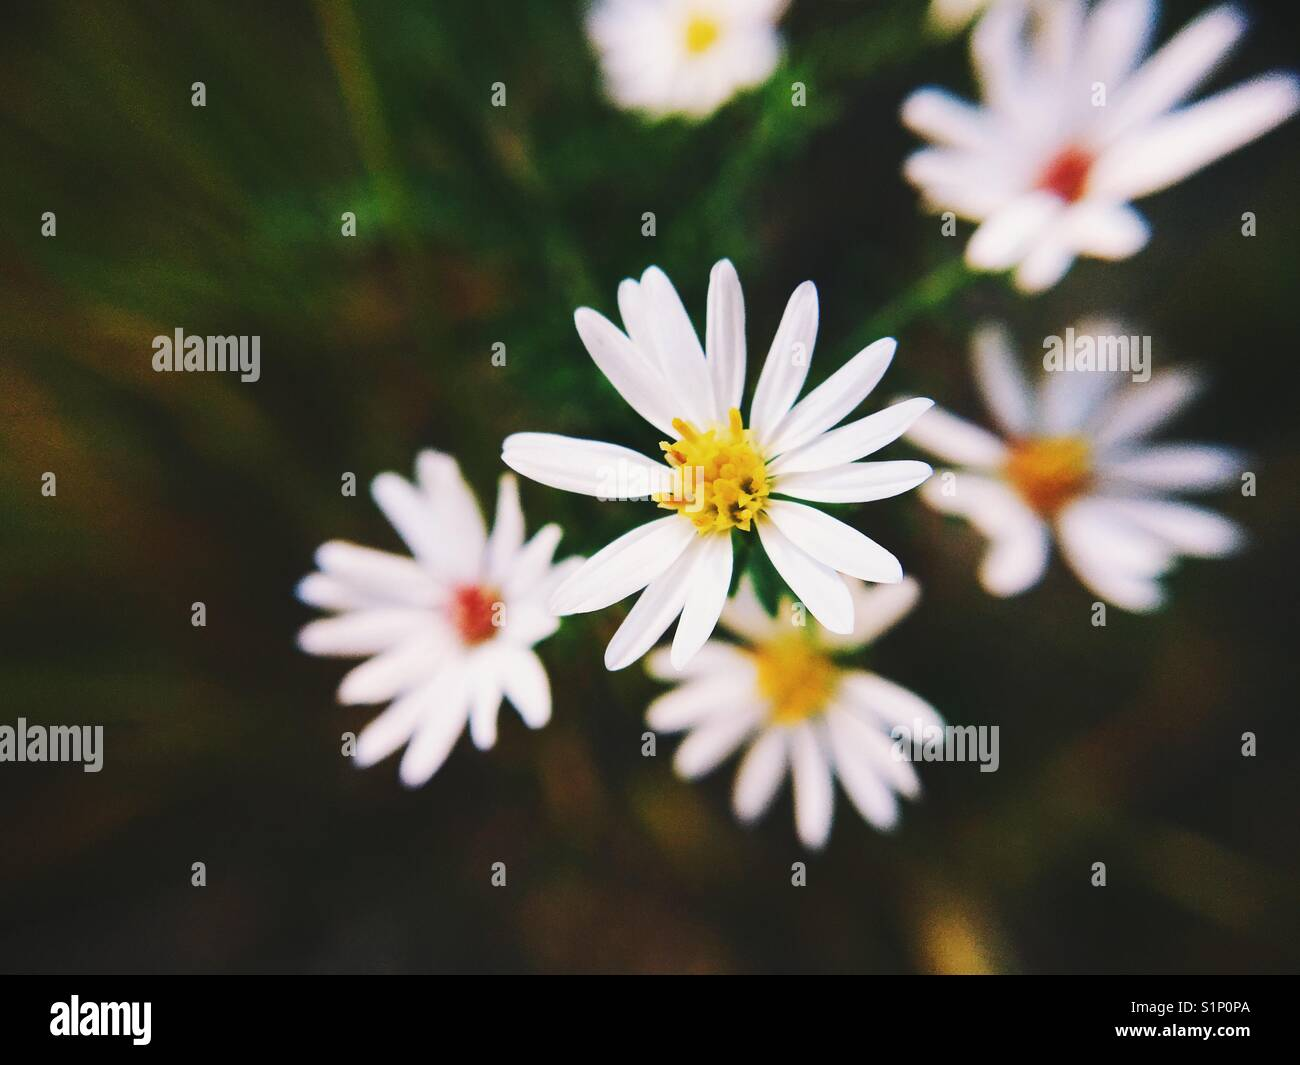 Tiny white flowers photographed with a macro lens attachment on an iPhone 6s. - Stock Image